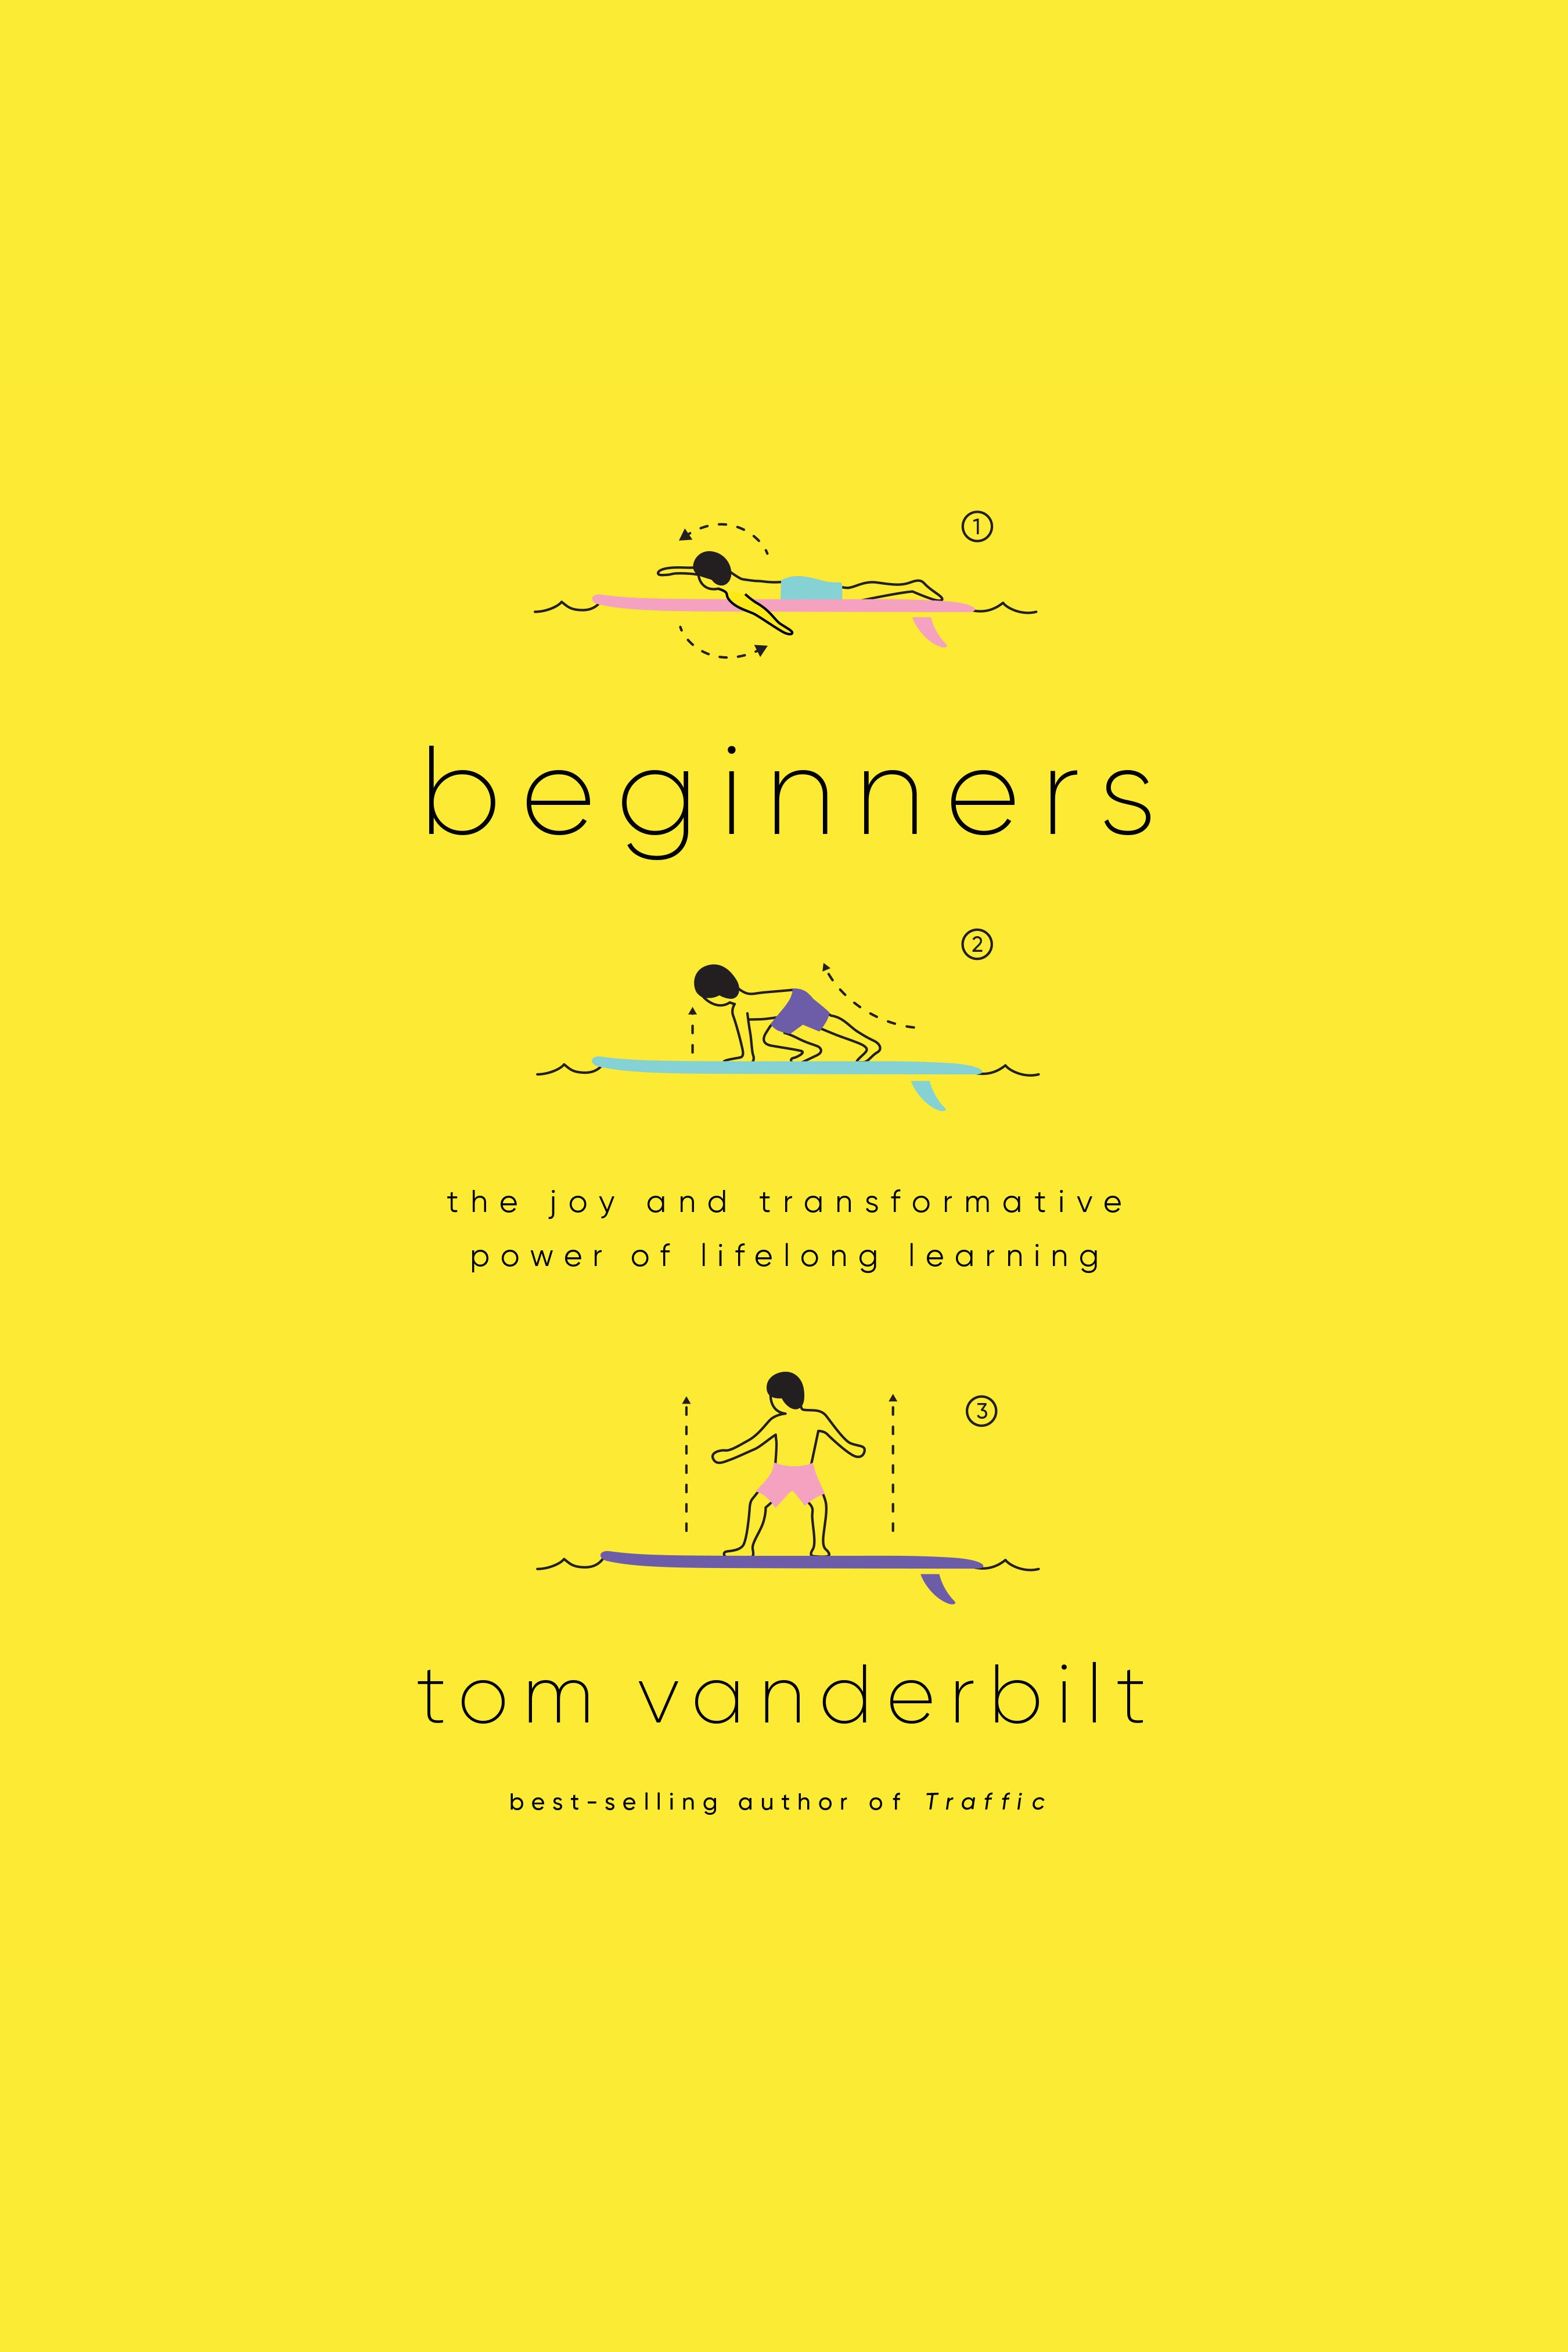 Beginners The Joy and Transformative Power of Lifelong Learning